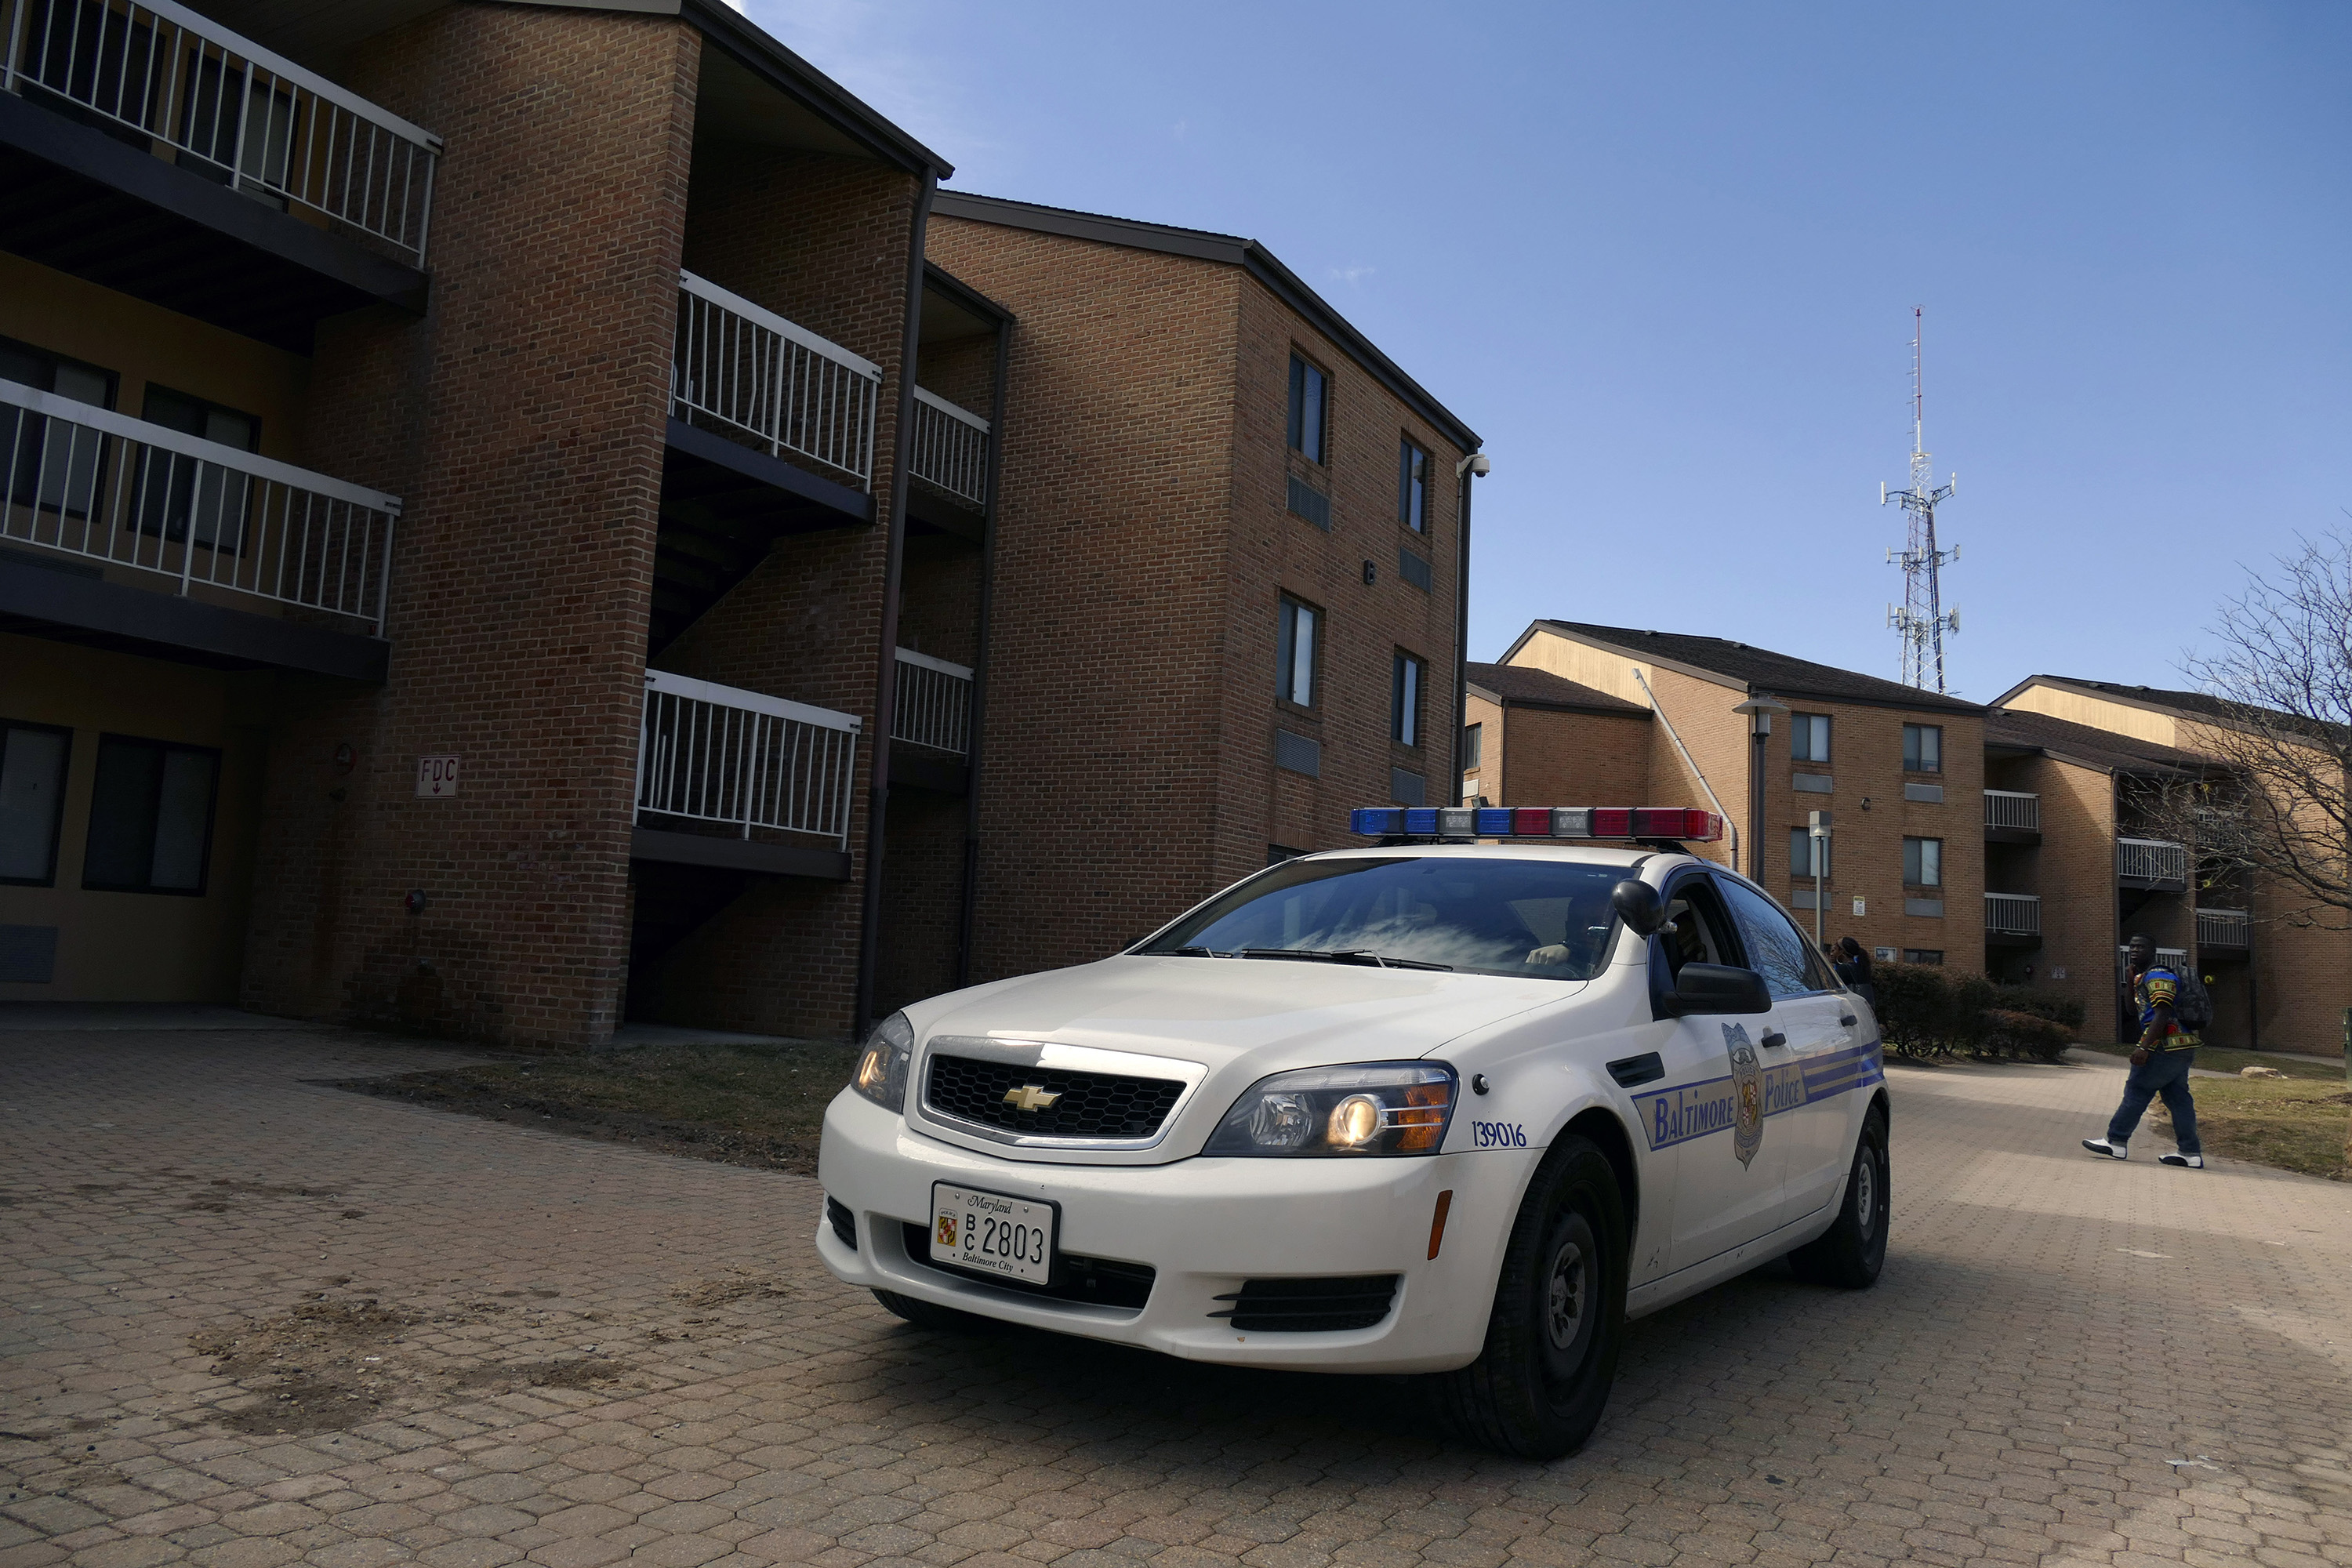 8 cops allegedly used an elite Baltimore police team to plunder the city and its residents